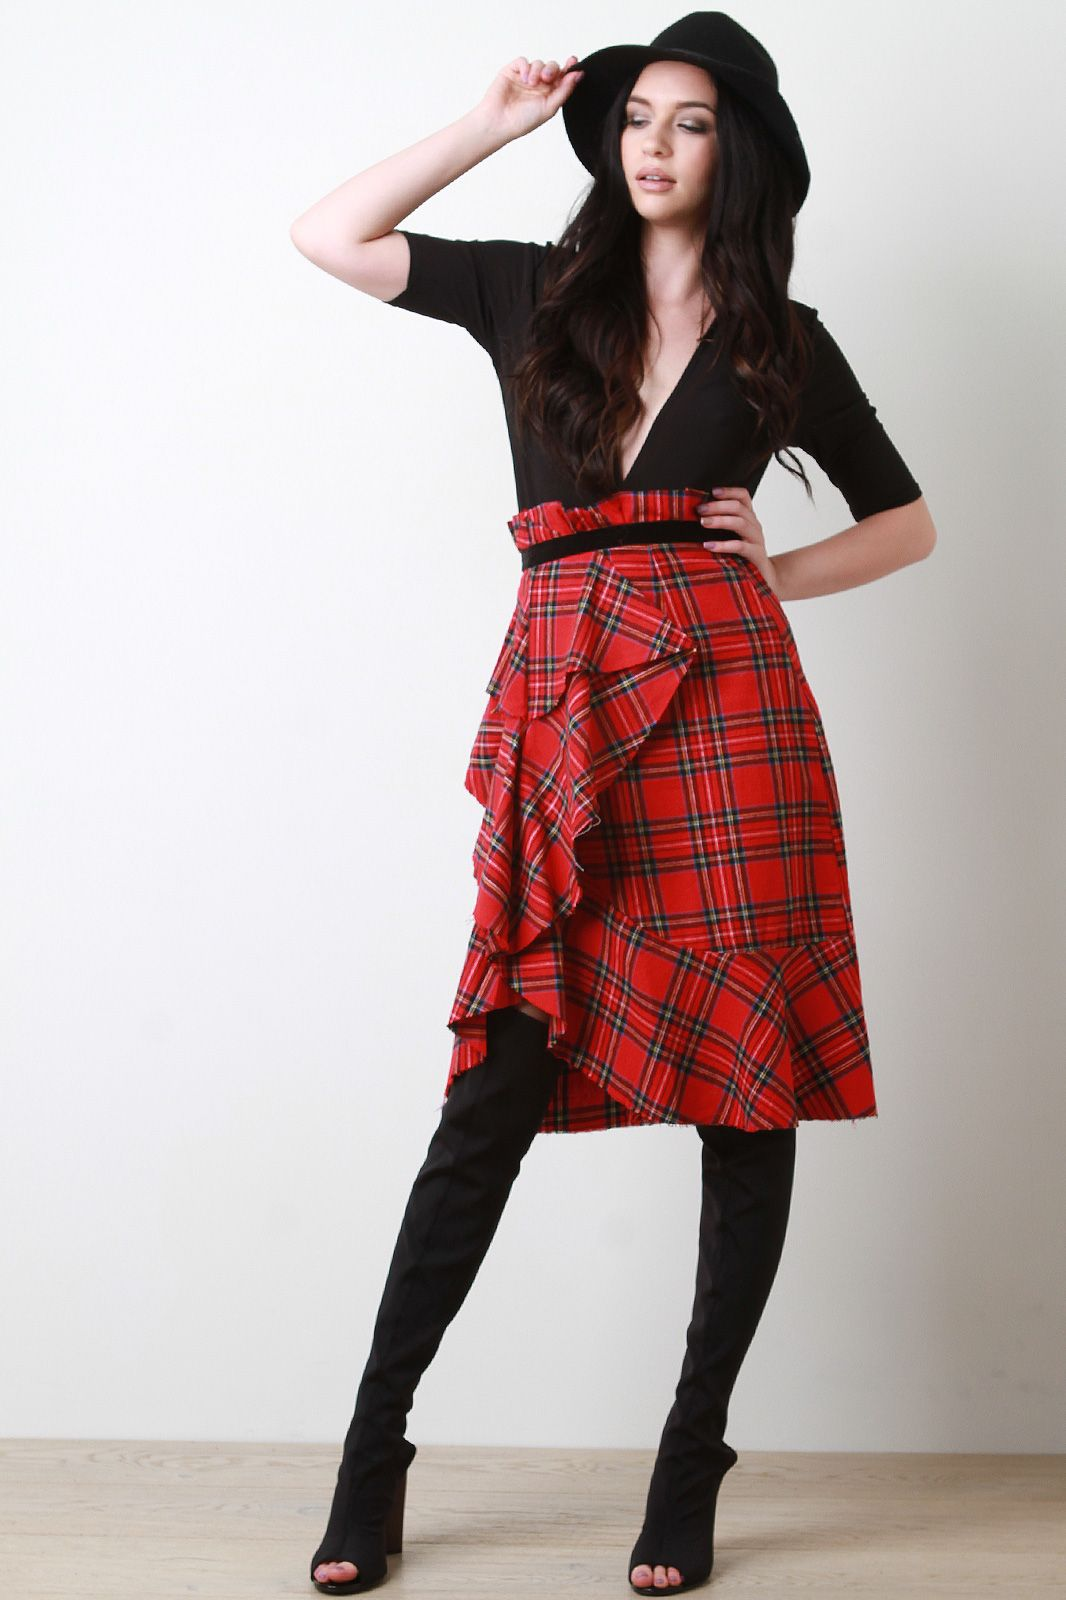 ea3a3c4cabc Shop Plaid Draped Ruffle Midi Paper Bag Skirt featuring woven plaid fabric